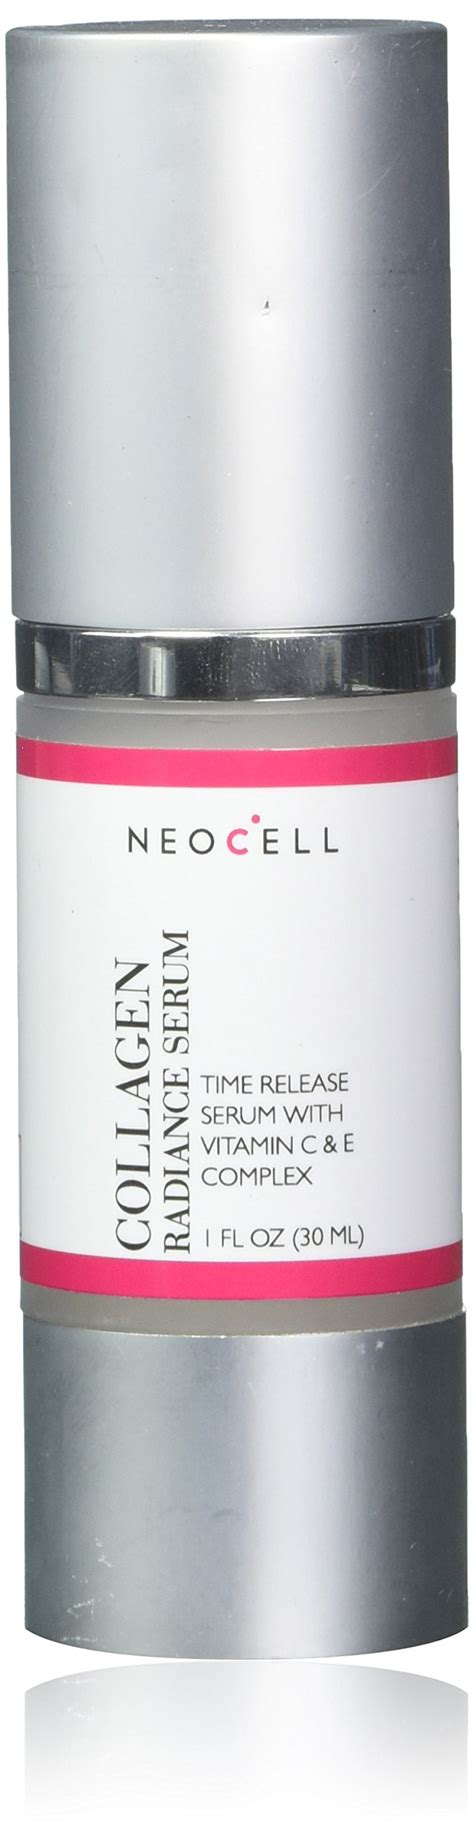 Serum Vitamin C Plus Collagen neocell advanced hyaluronic acid lipsome serum